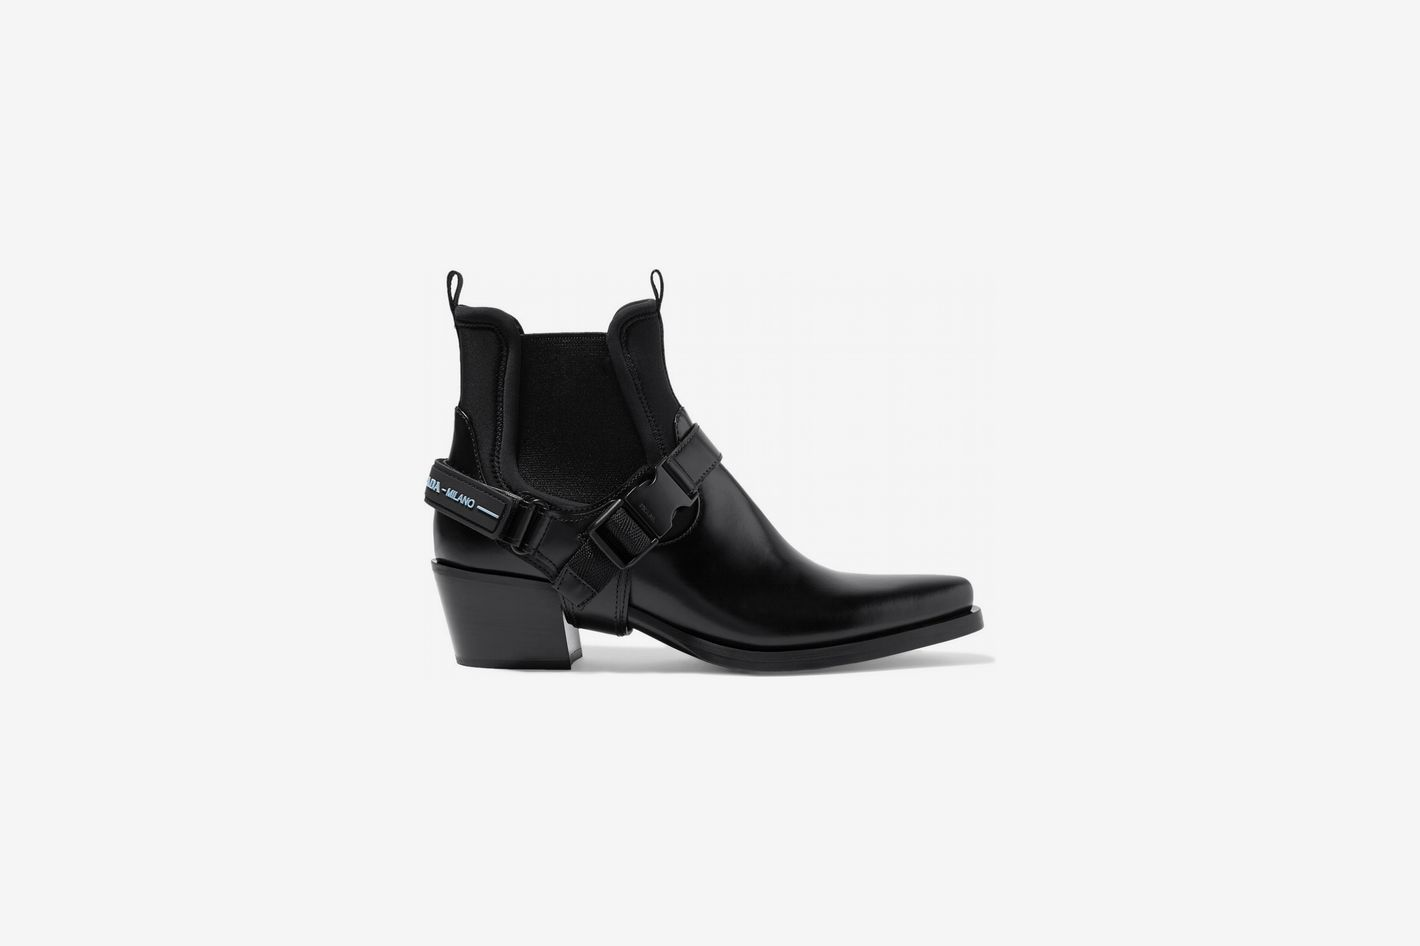 4fecdc8a5b4 Prada Leather and Neoprene Ankle Boots